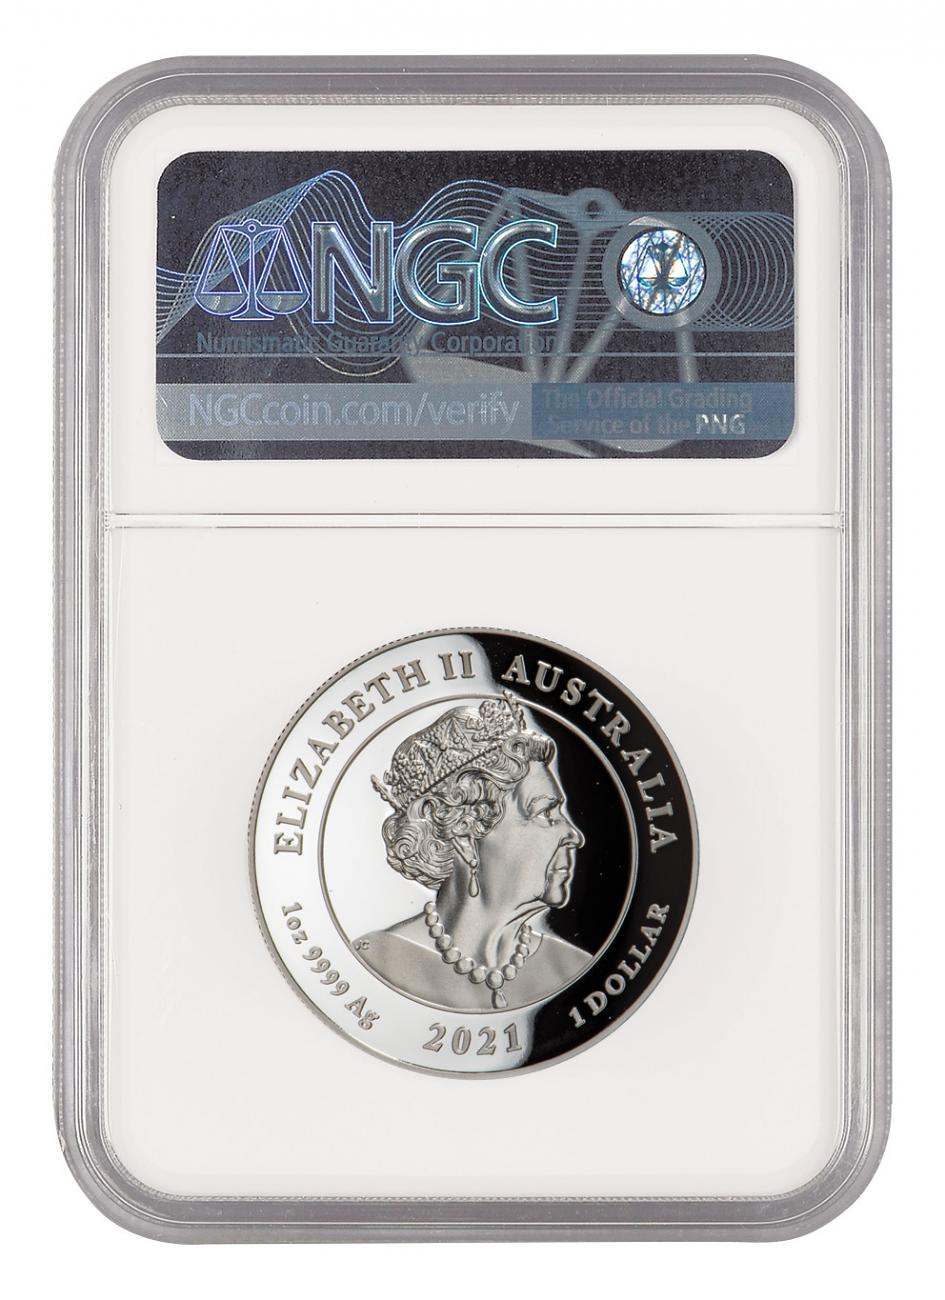 Winged Victory 2021 1oz Silver Proof High Relief Coin